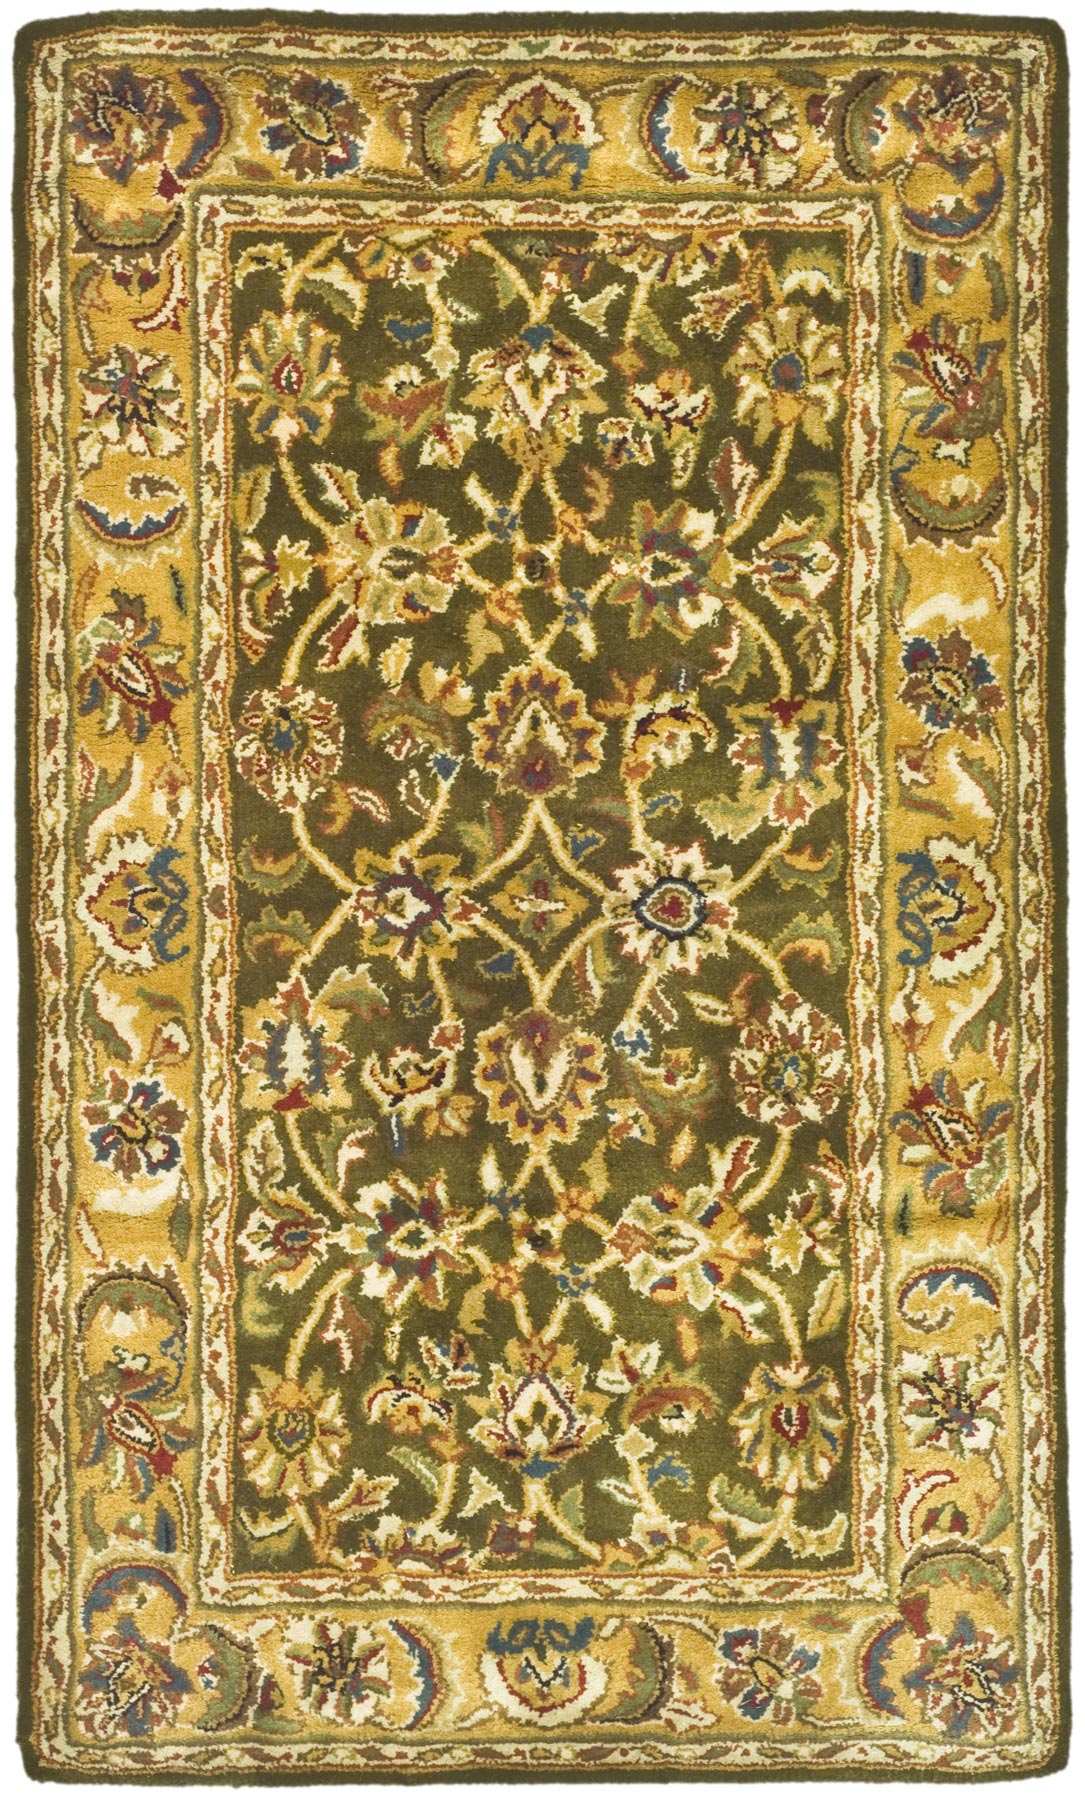 Rug Cl758m Classic Area Rugs By Safavieh